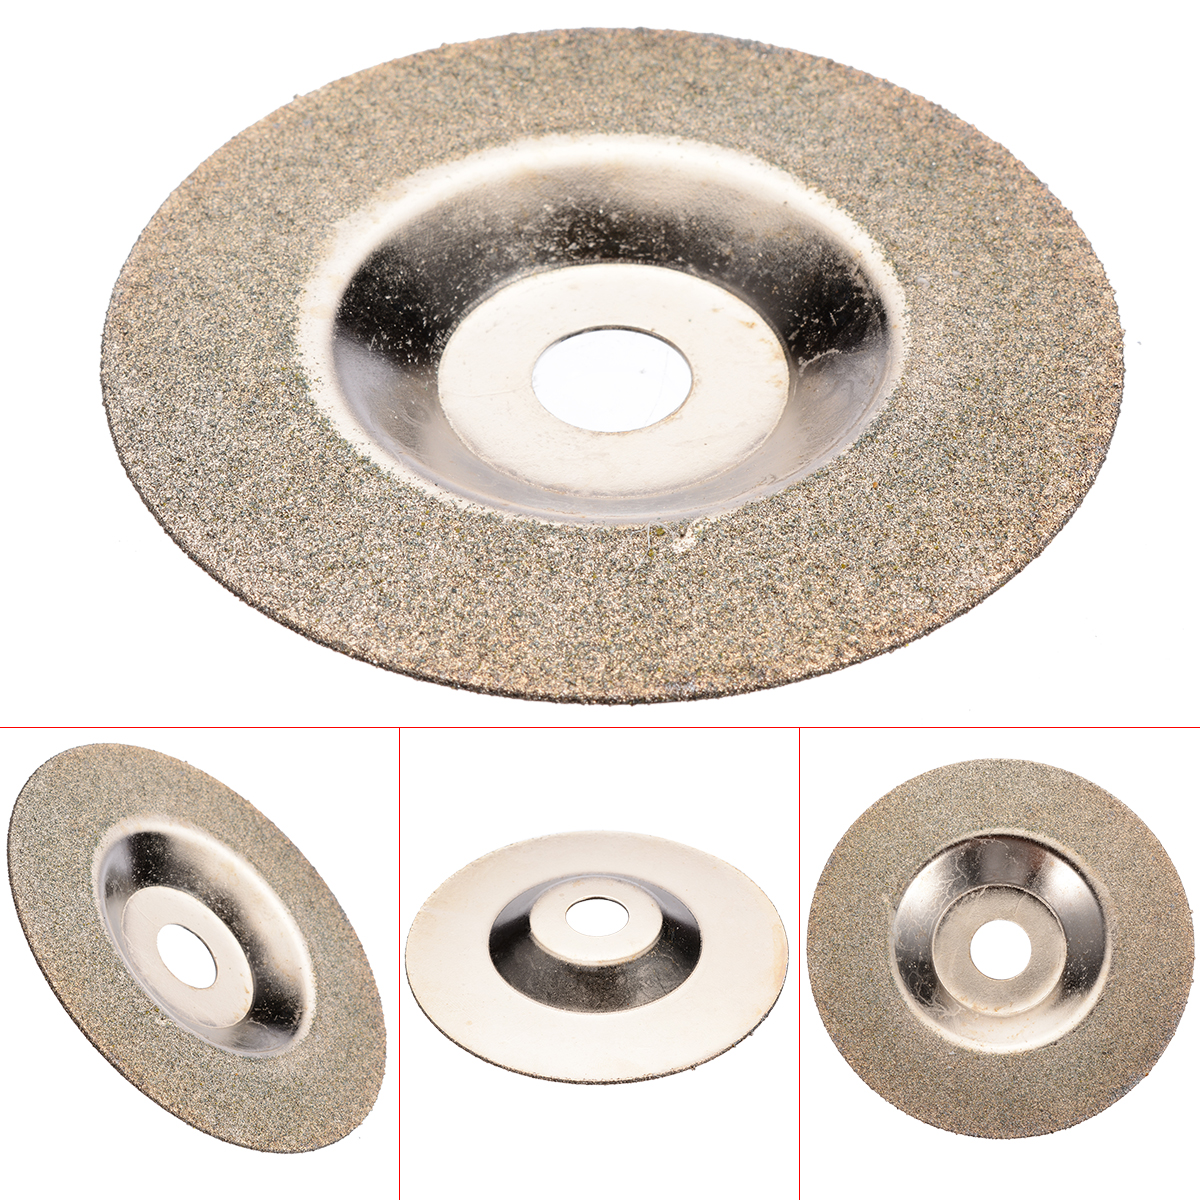 100mm*16mm 80 Grit Diamond Coated Grinding Wheel Angle Grinder Disc Cuttering Saw Blades Grinding Wheel